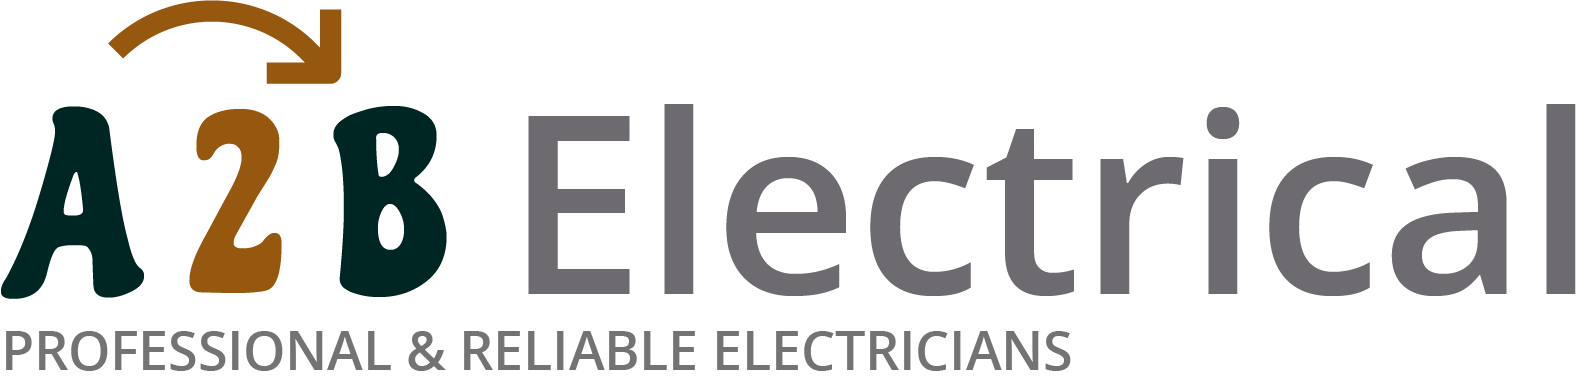 If you have electrical wiring problems in Fairlop, we can provide an electrician to have a look for you.